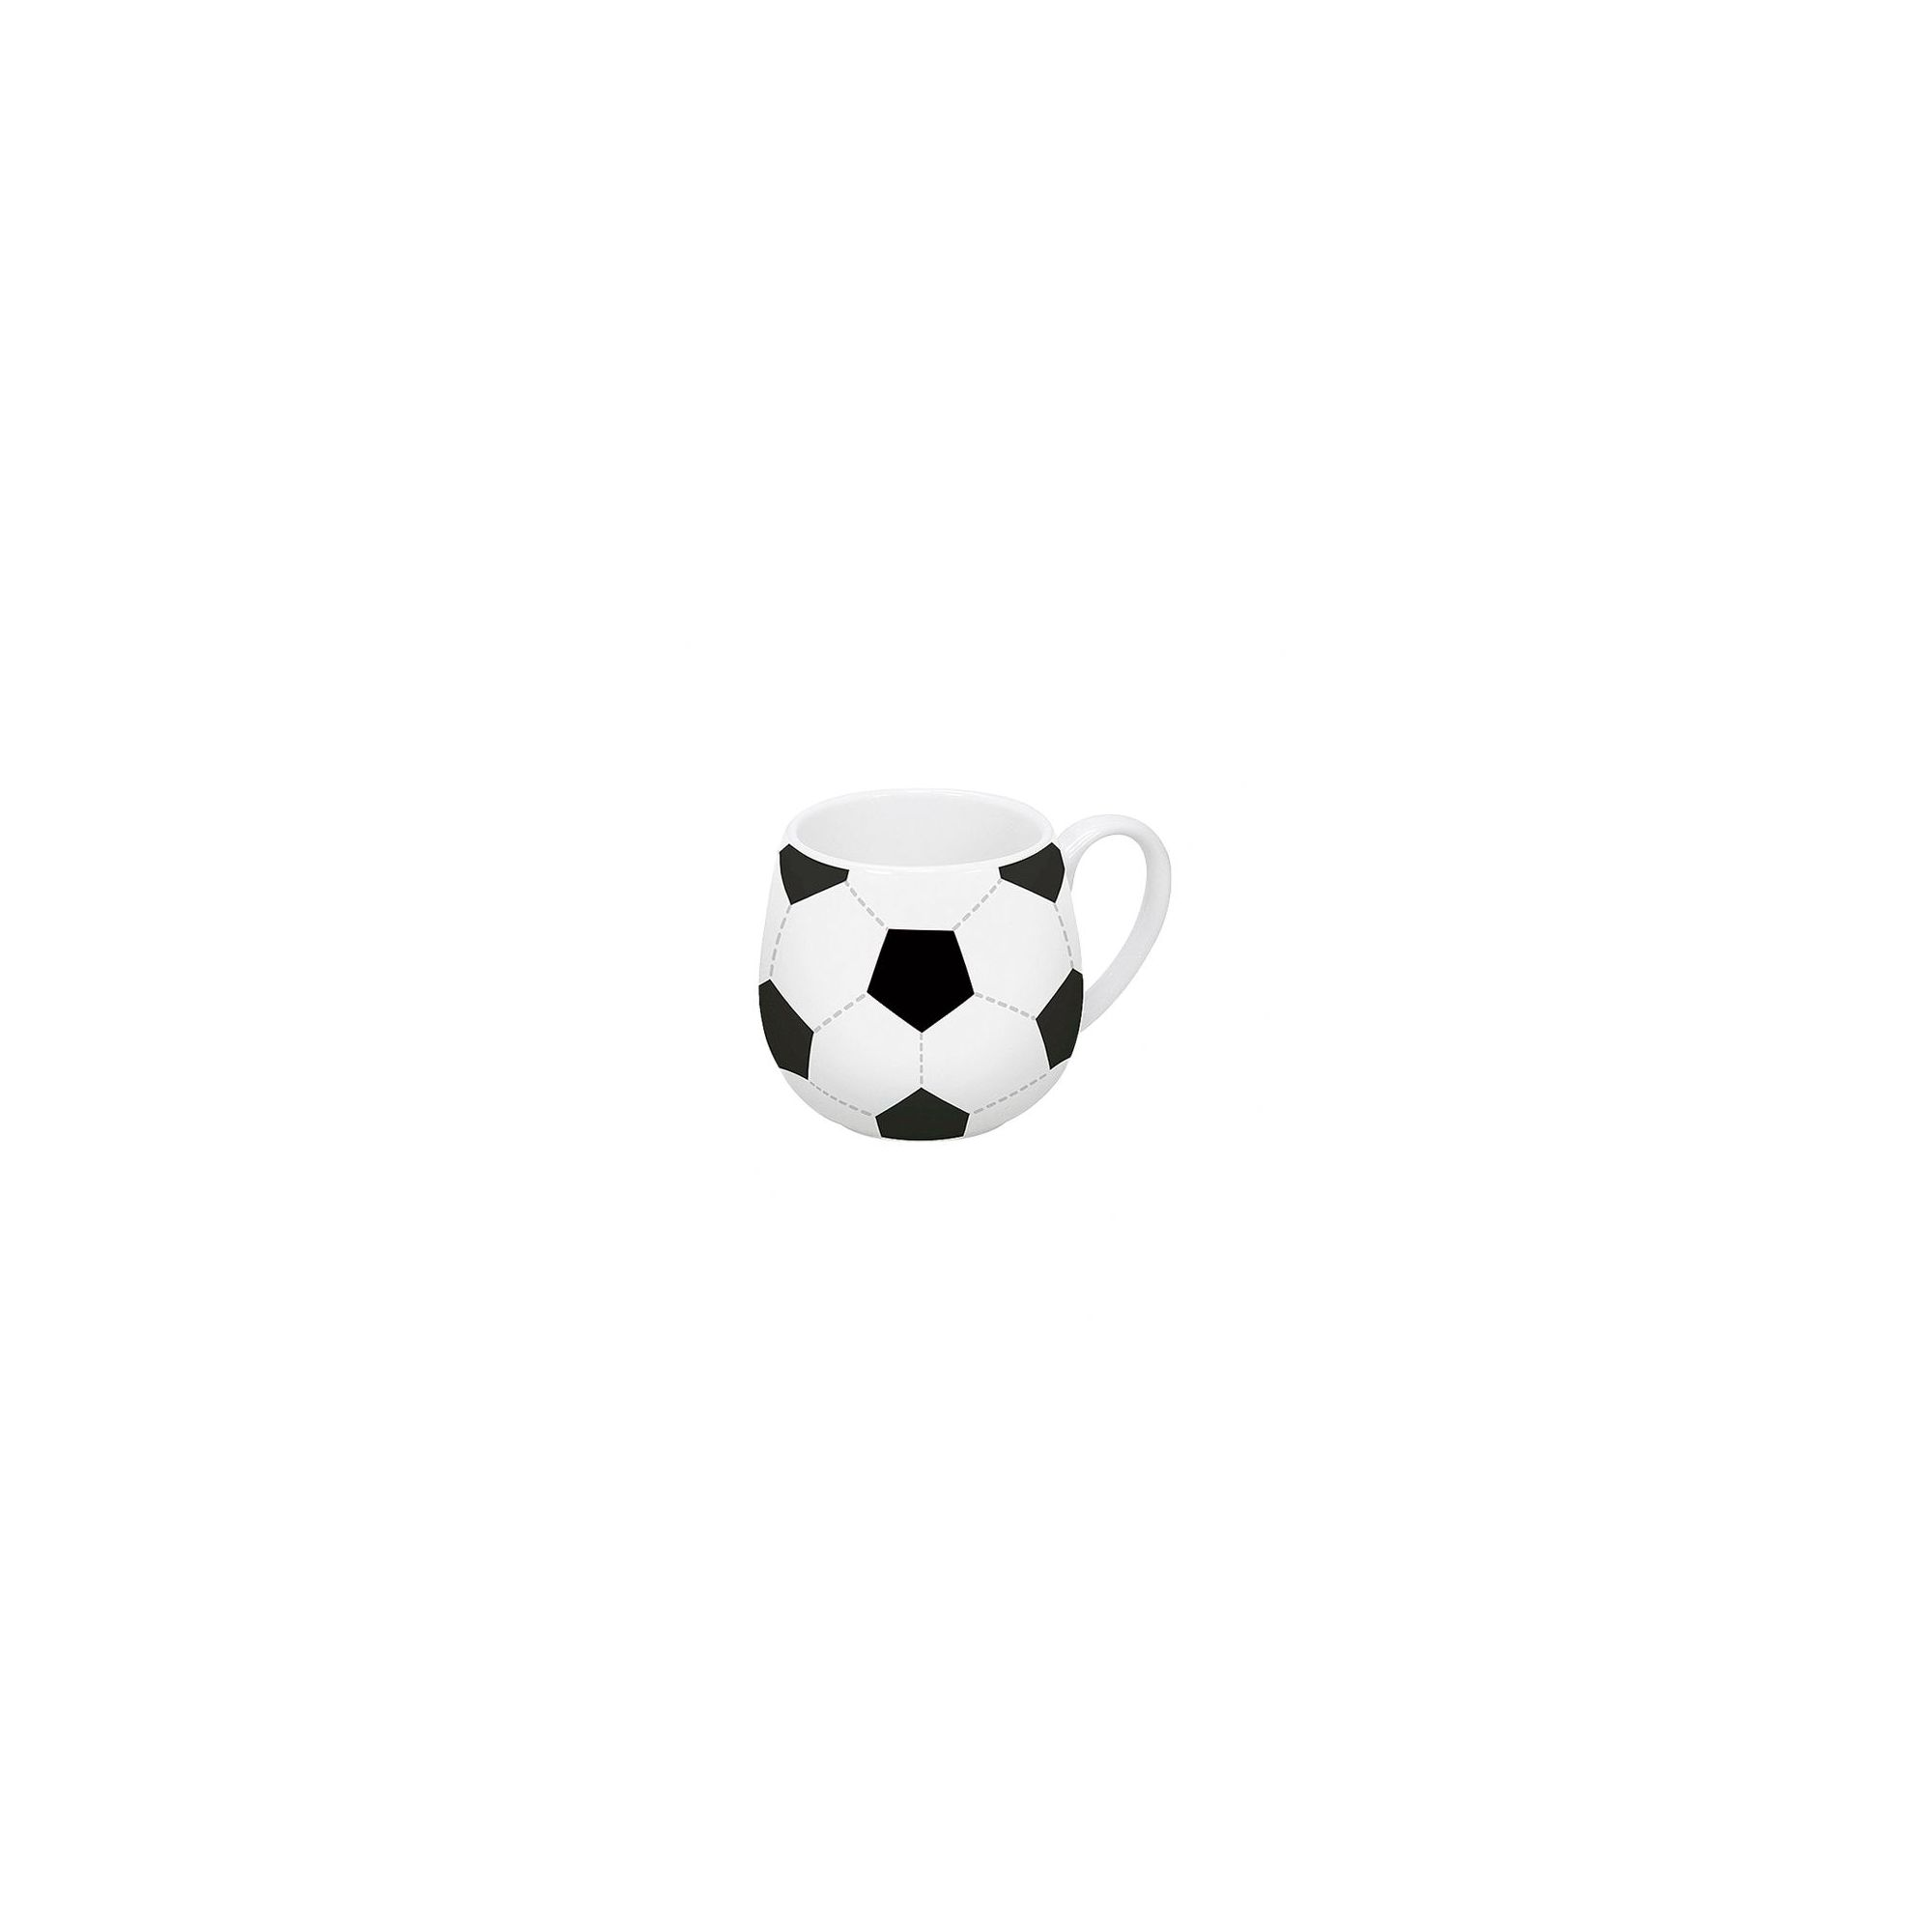 koenitz-snuggle-football-mug-set-4